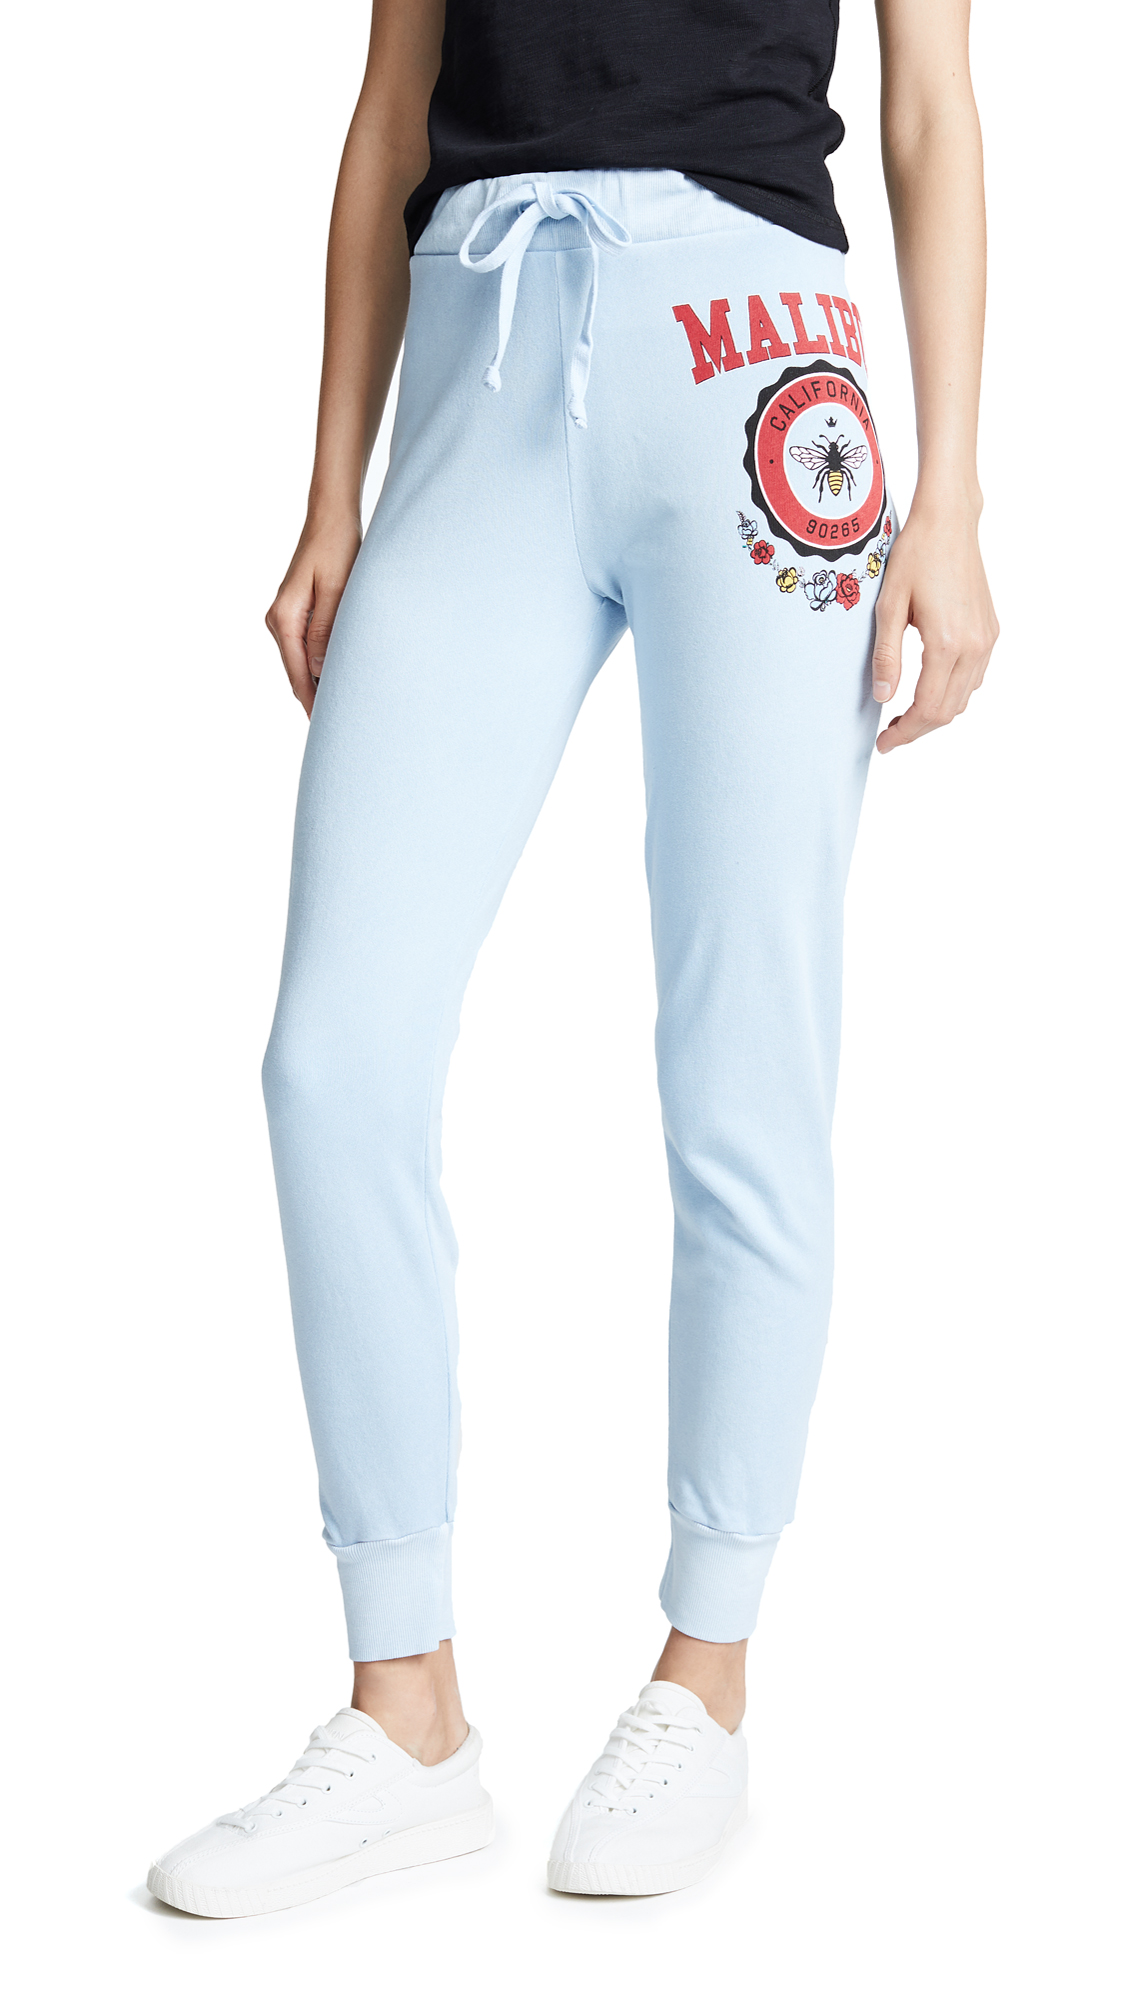 Wildfox Malibu Crest Jack Jogger Pants In Pigment Saddle Blue